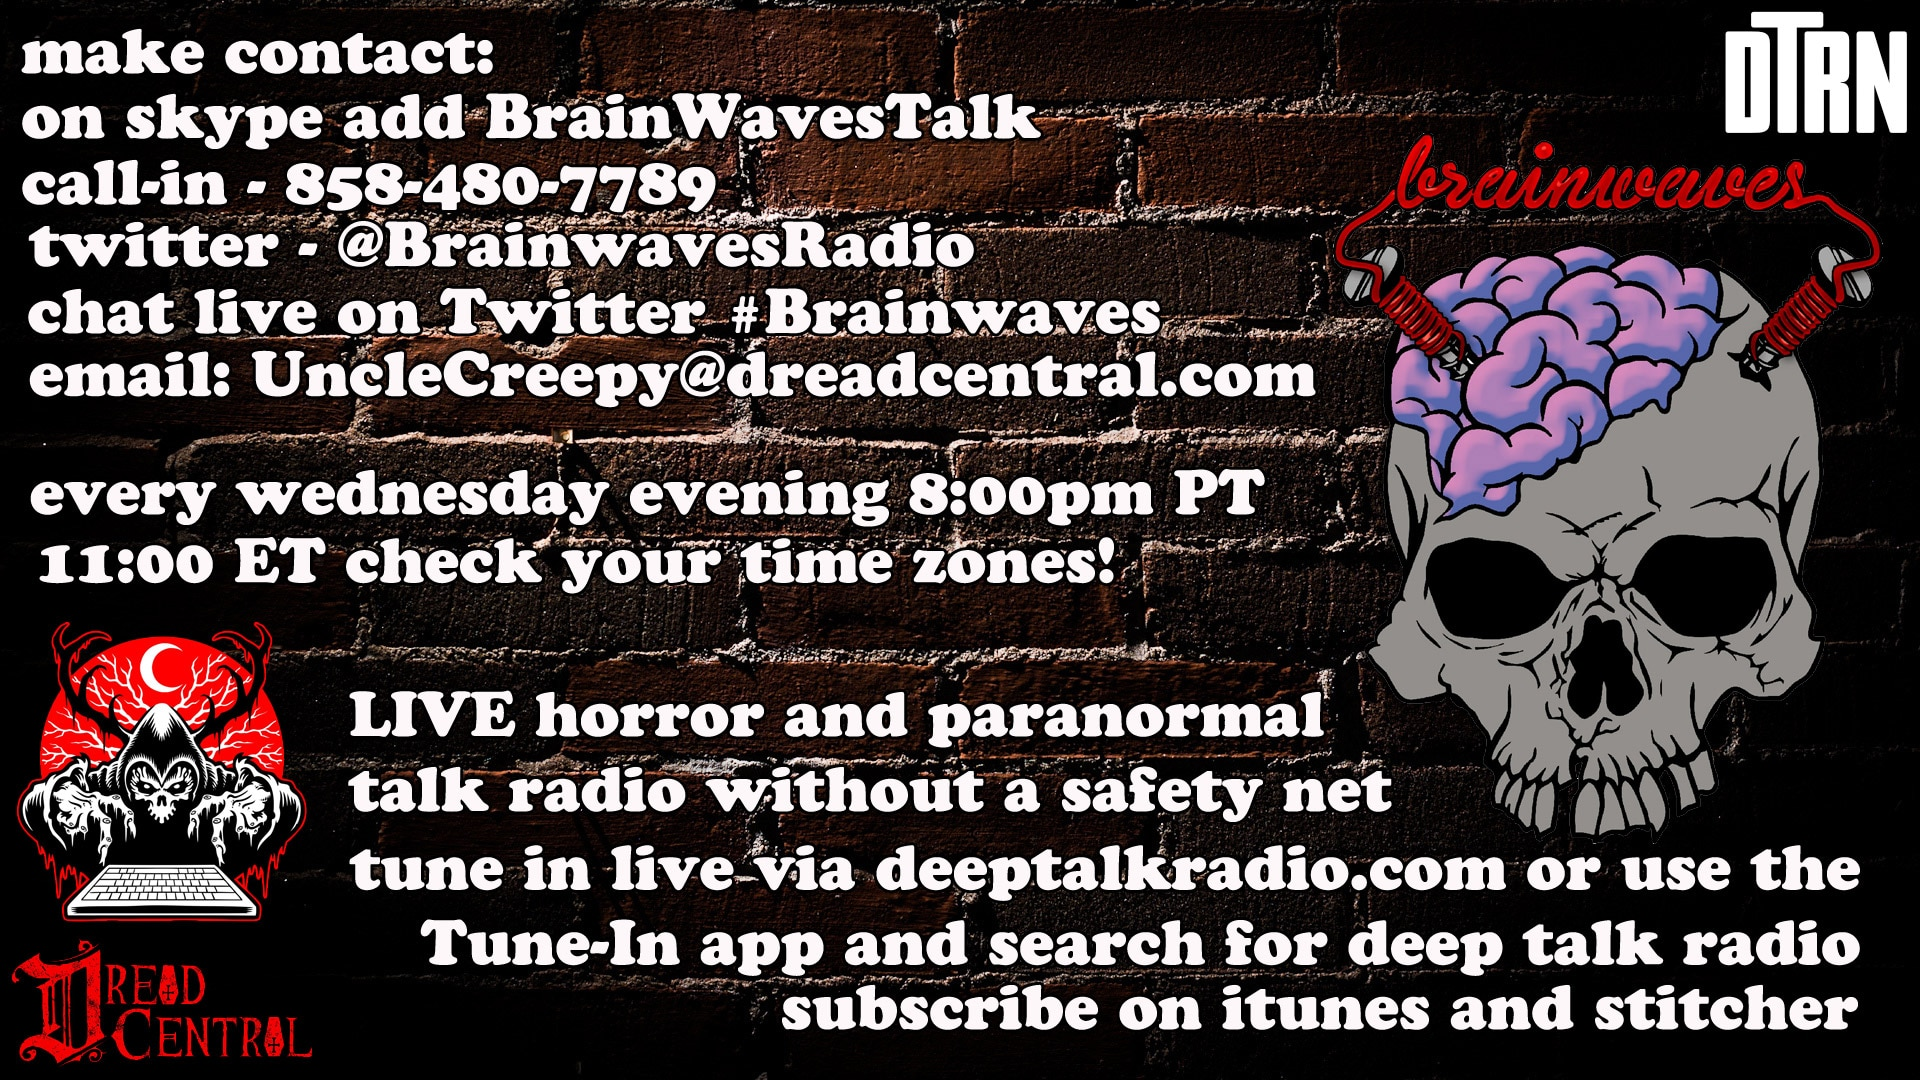 brainwaves updated contact - TONIGHT! #Brainwaves Episode 65 - 2nd Annual LIVE Halloween Investigation: Terror at the 10th Avenue Arts Center